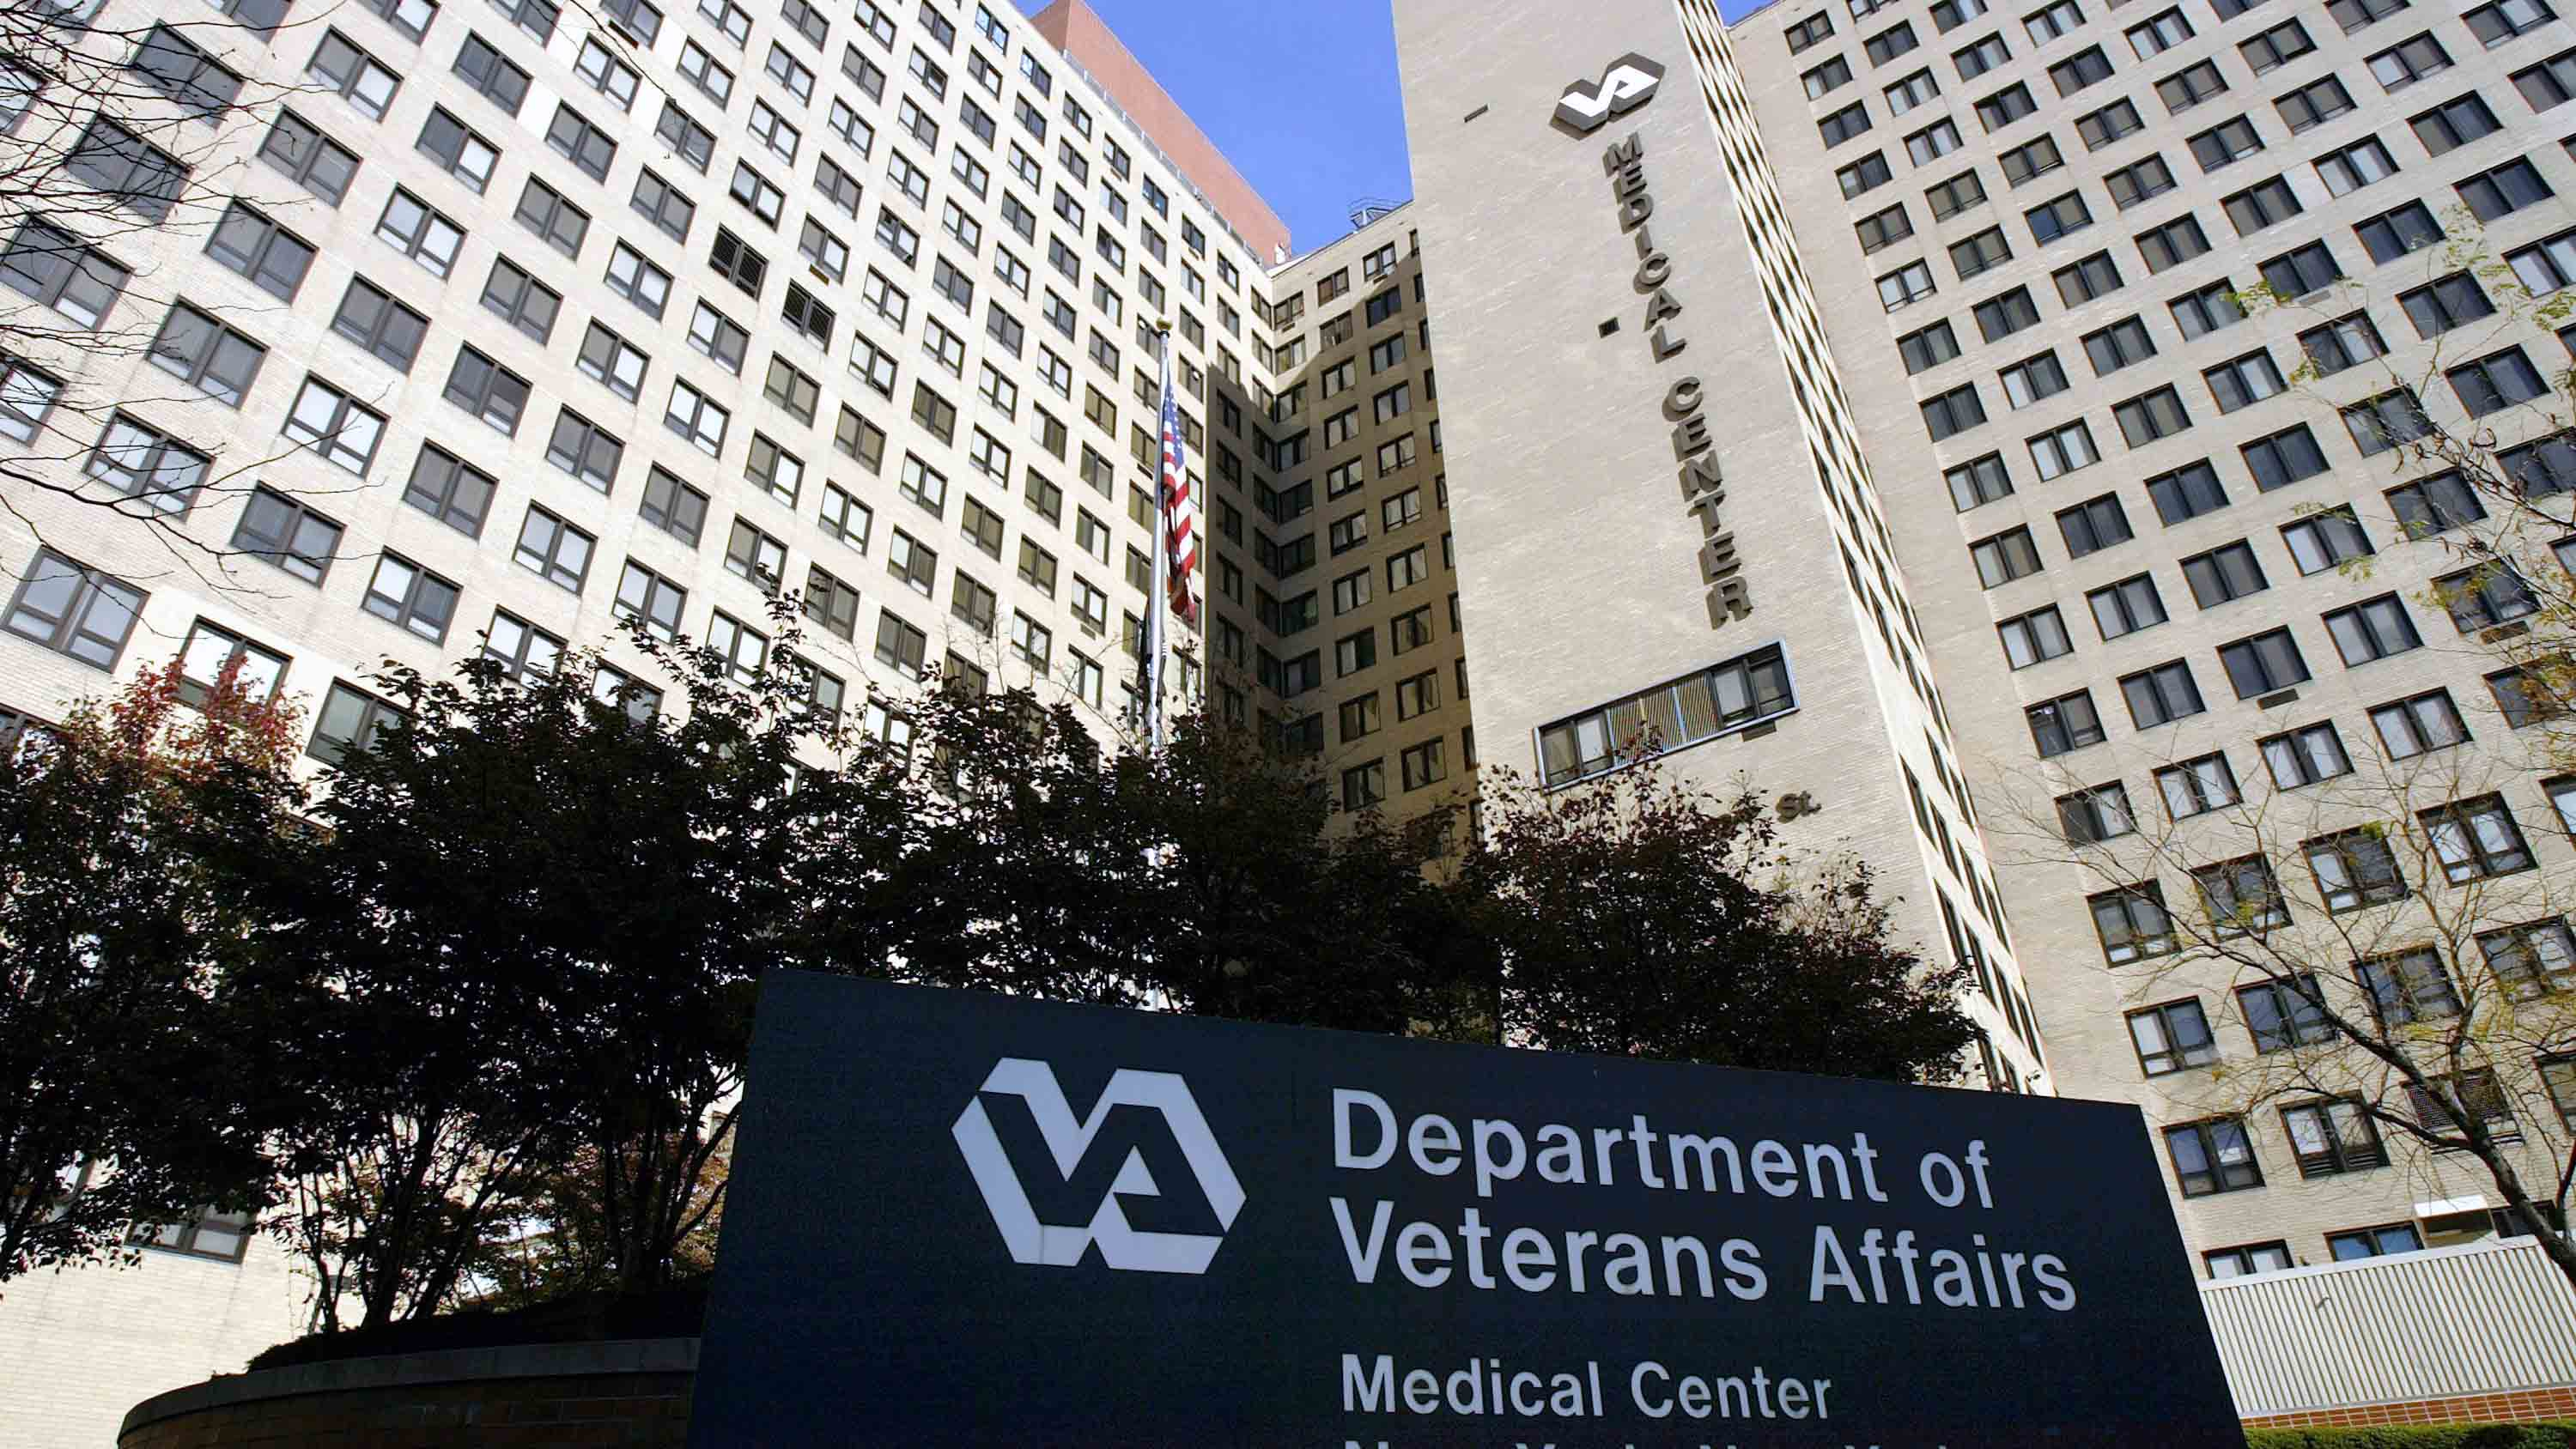 The exterior of the Veterans Affairs Hospital is seen in New York City. (Photo by Spencer Platt/Getty Images)